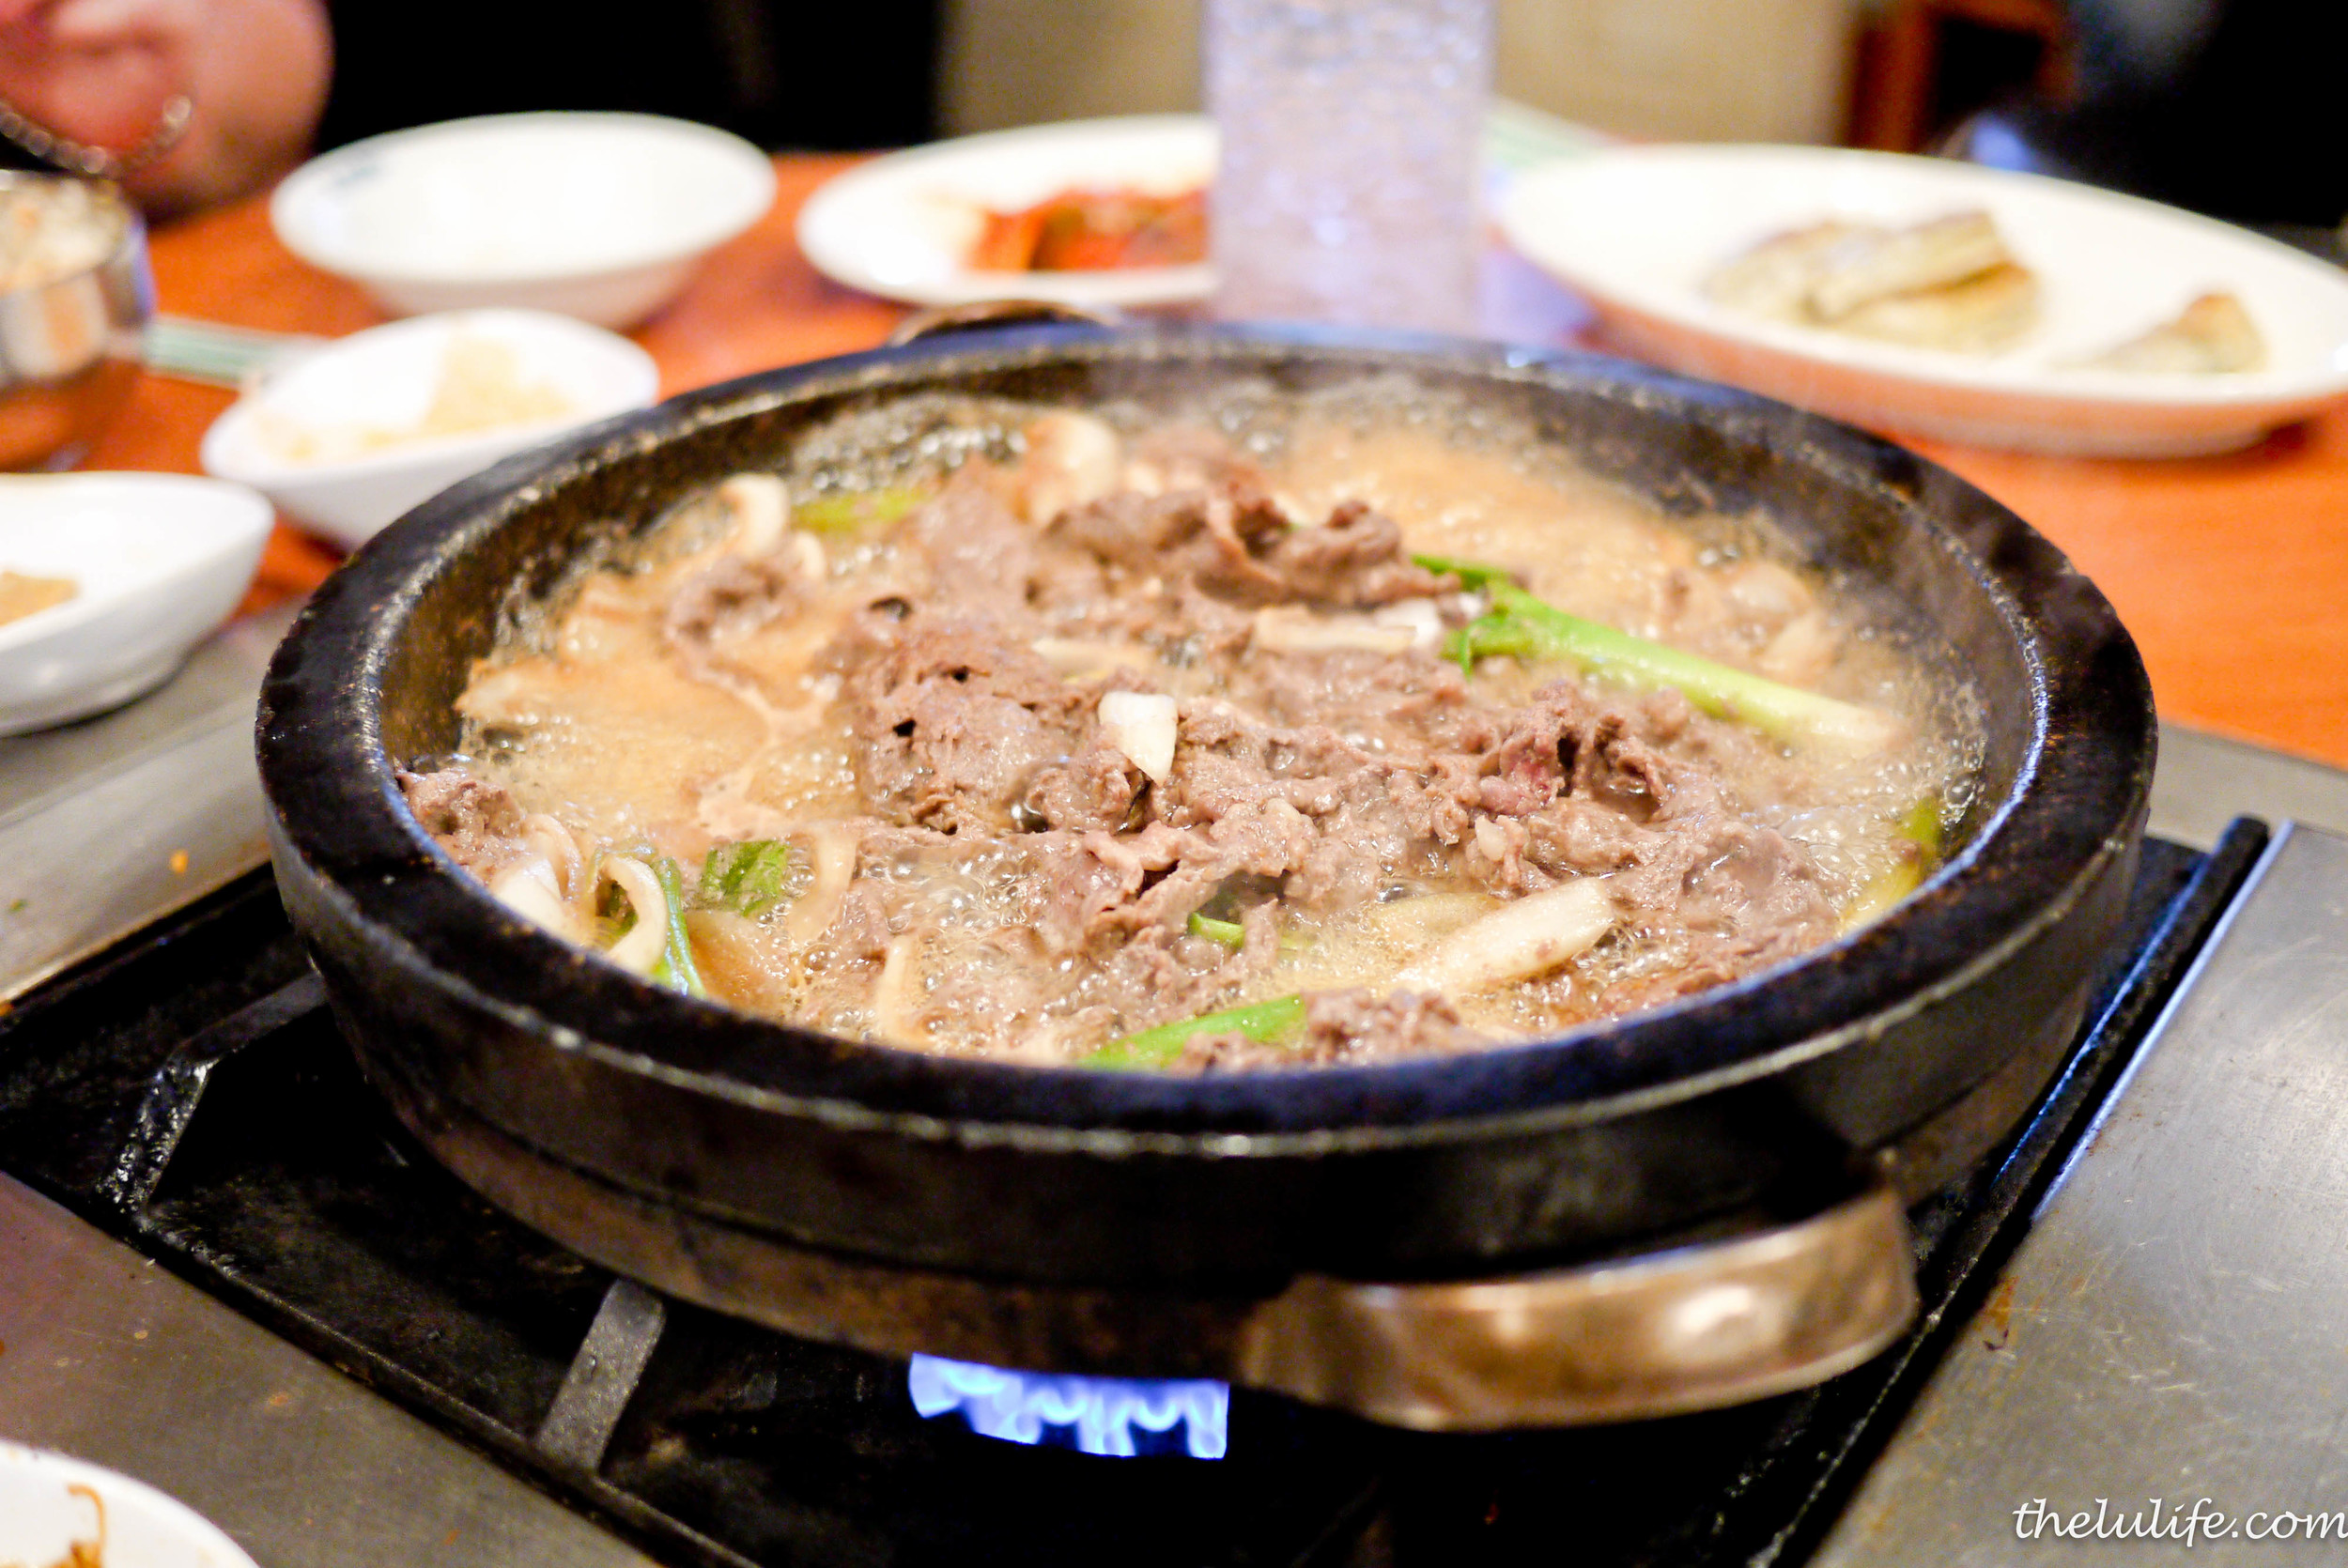 BulLak-Gui - Beef and octopus marinated in house specialty sauce cooked in stone pan